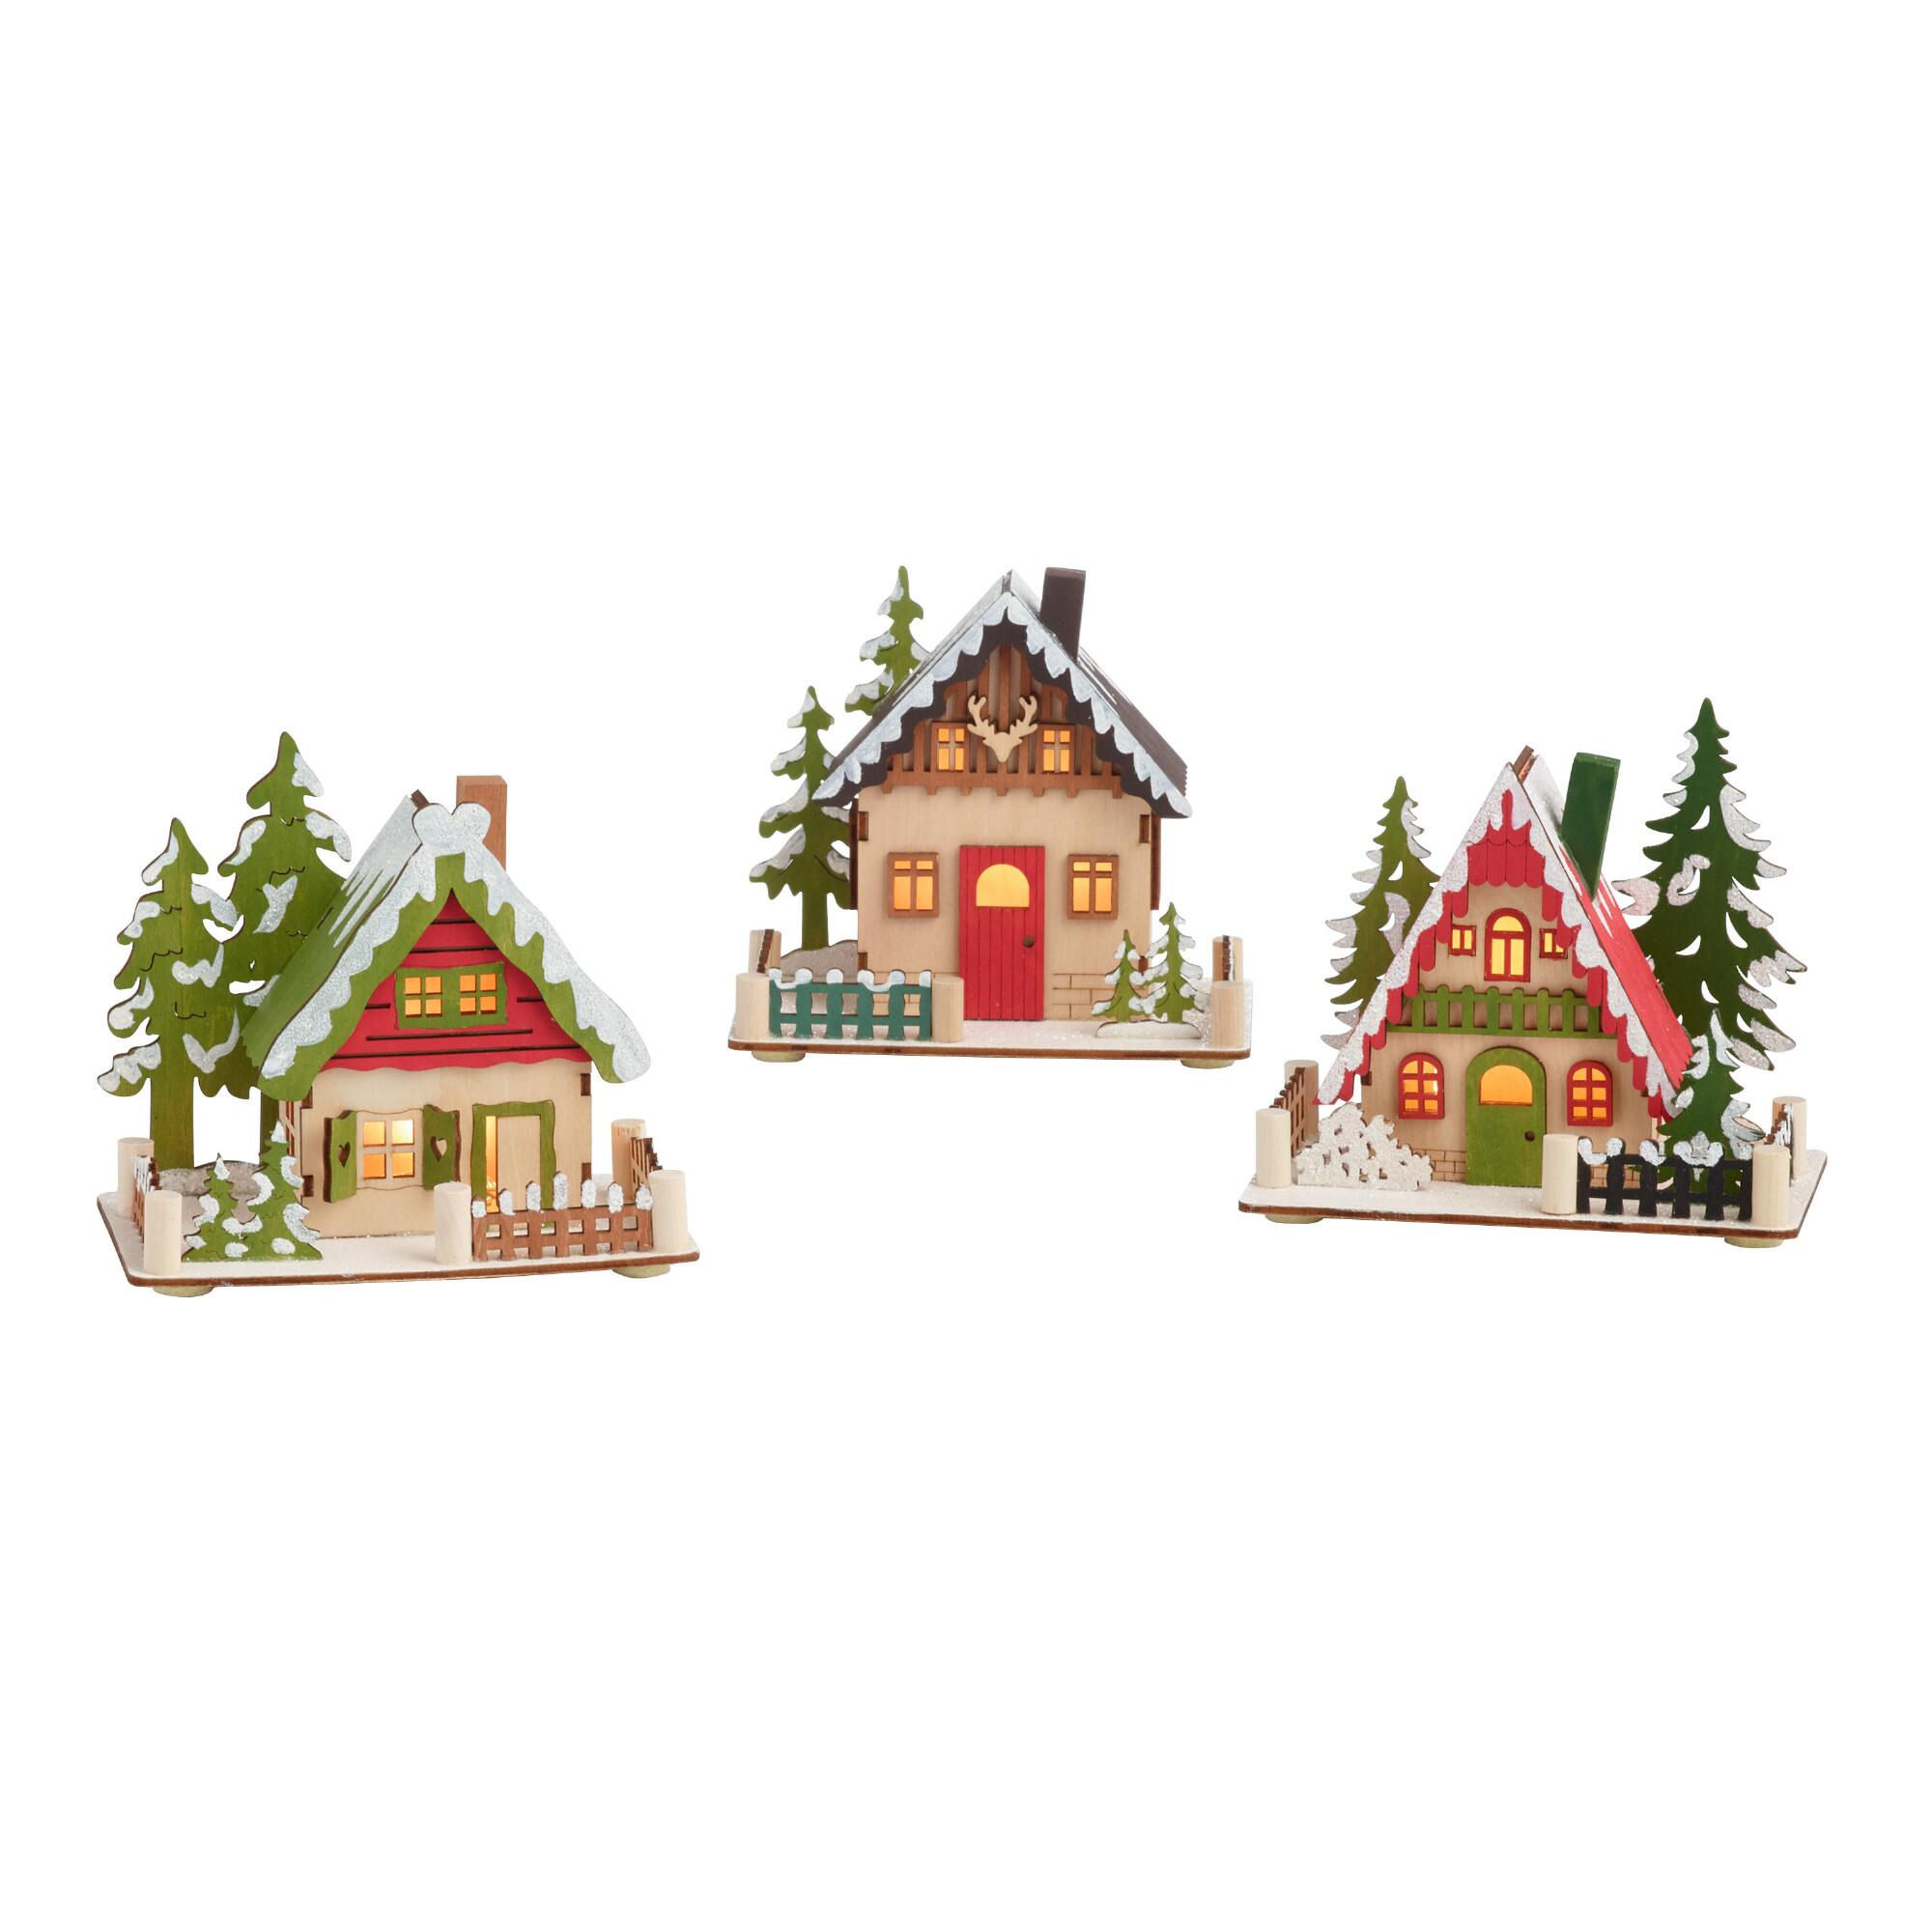 Christmas Home Decor 50% Off ONLINE ONLY!